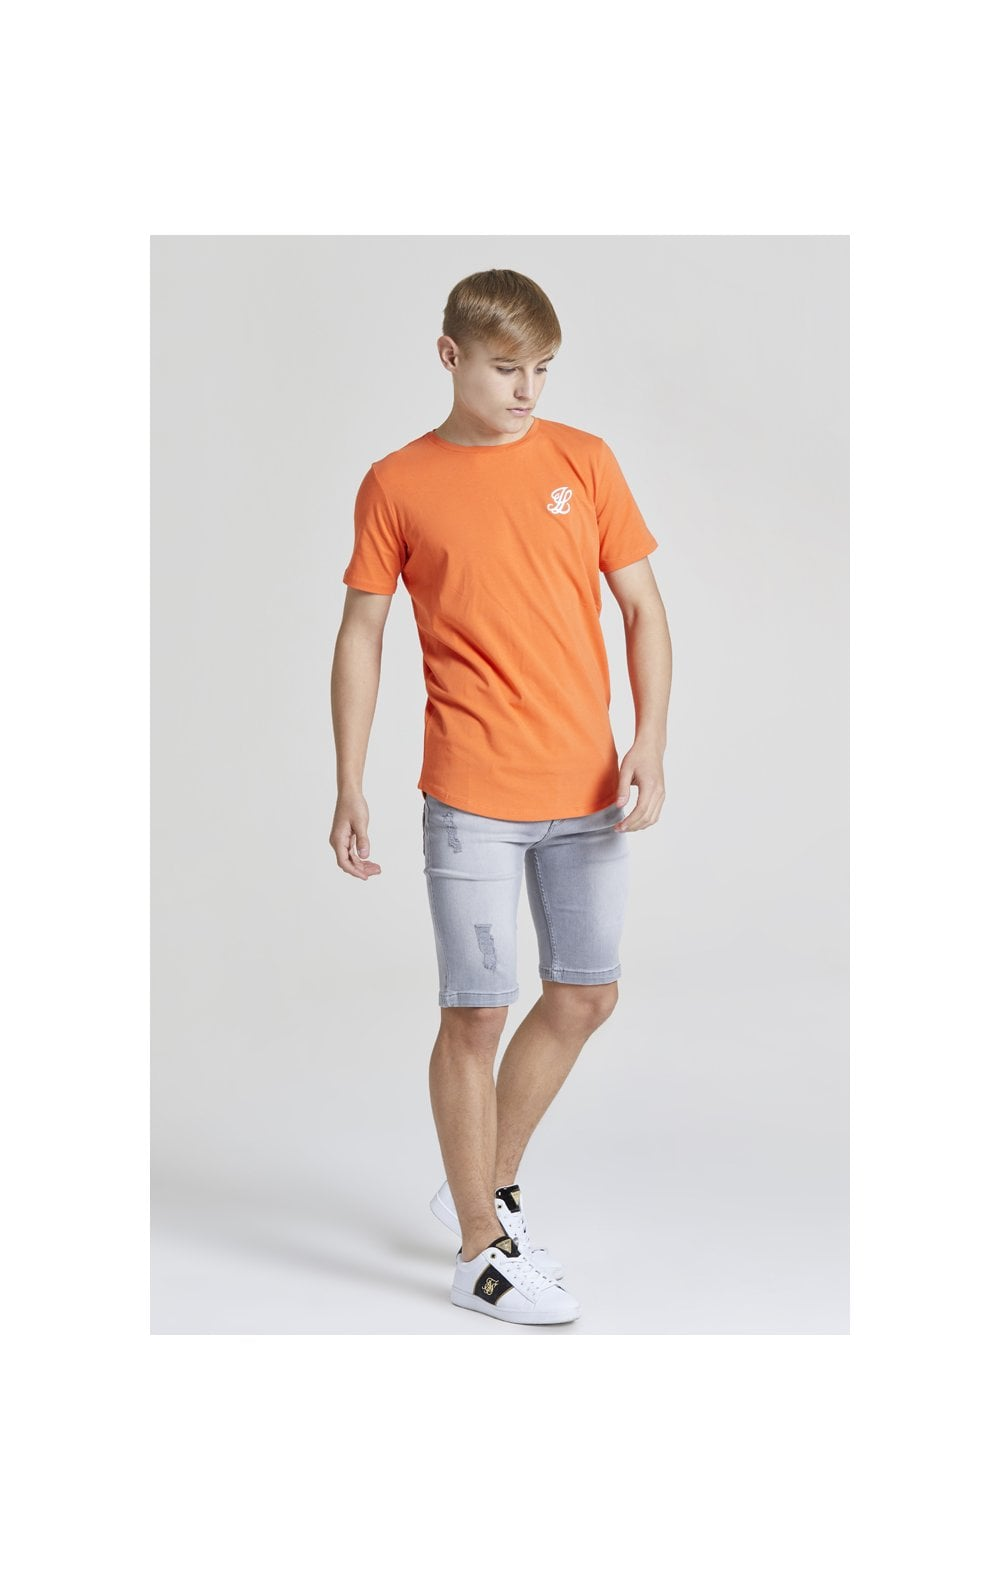 Illusive London Core Tee - Orange (3)